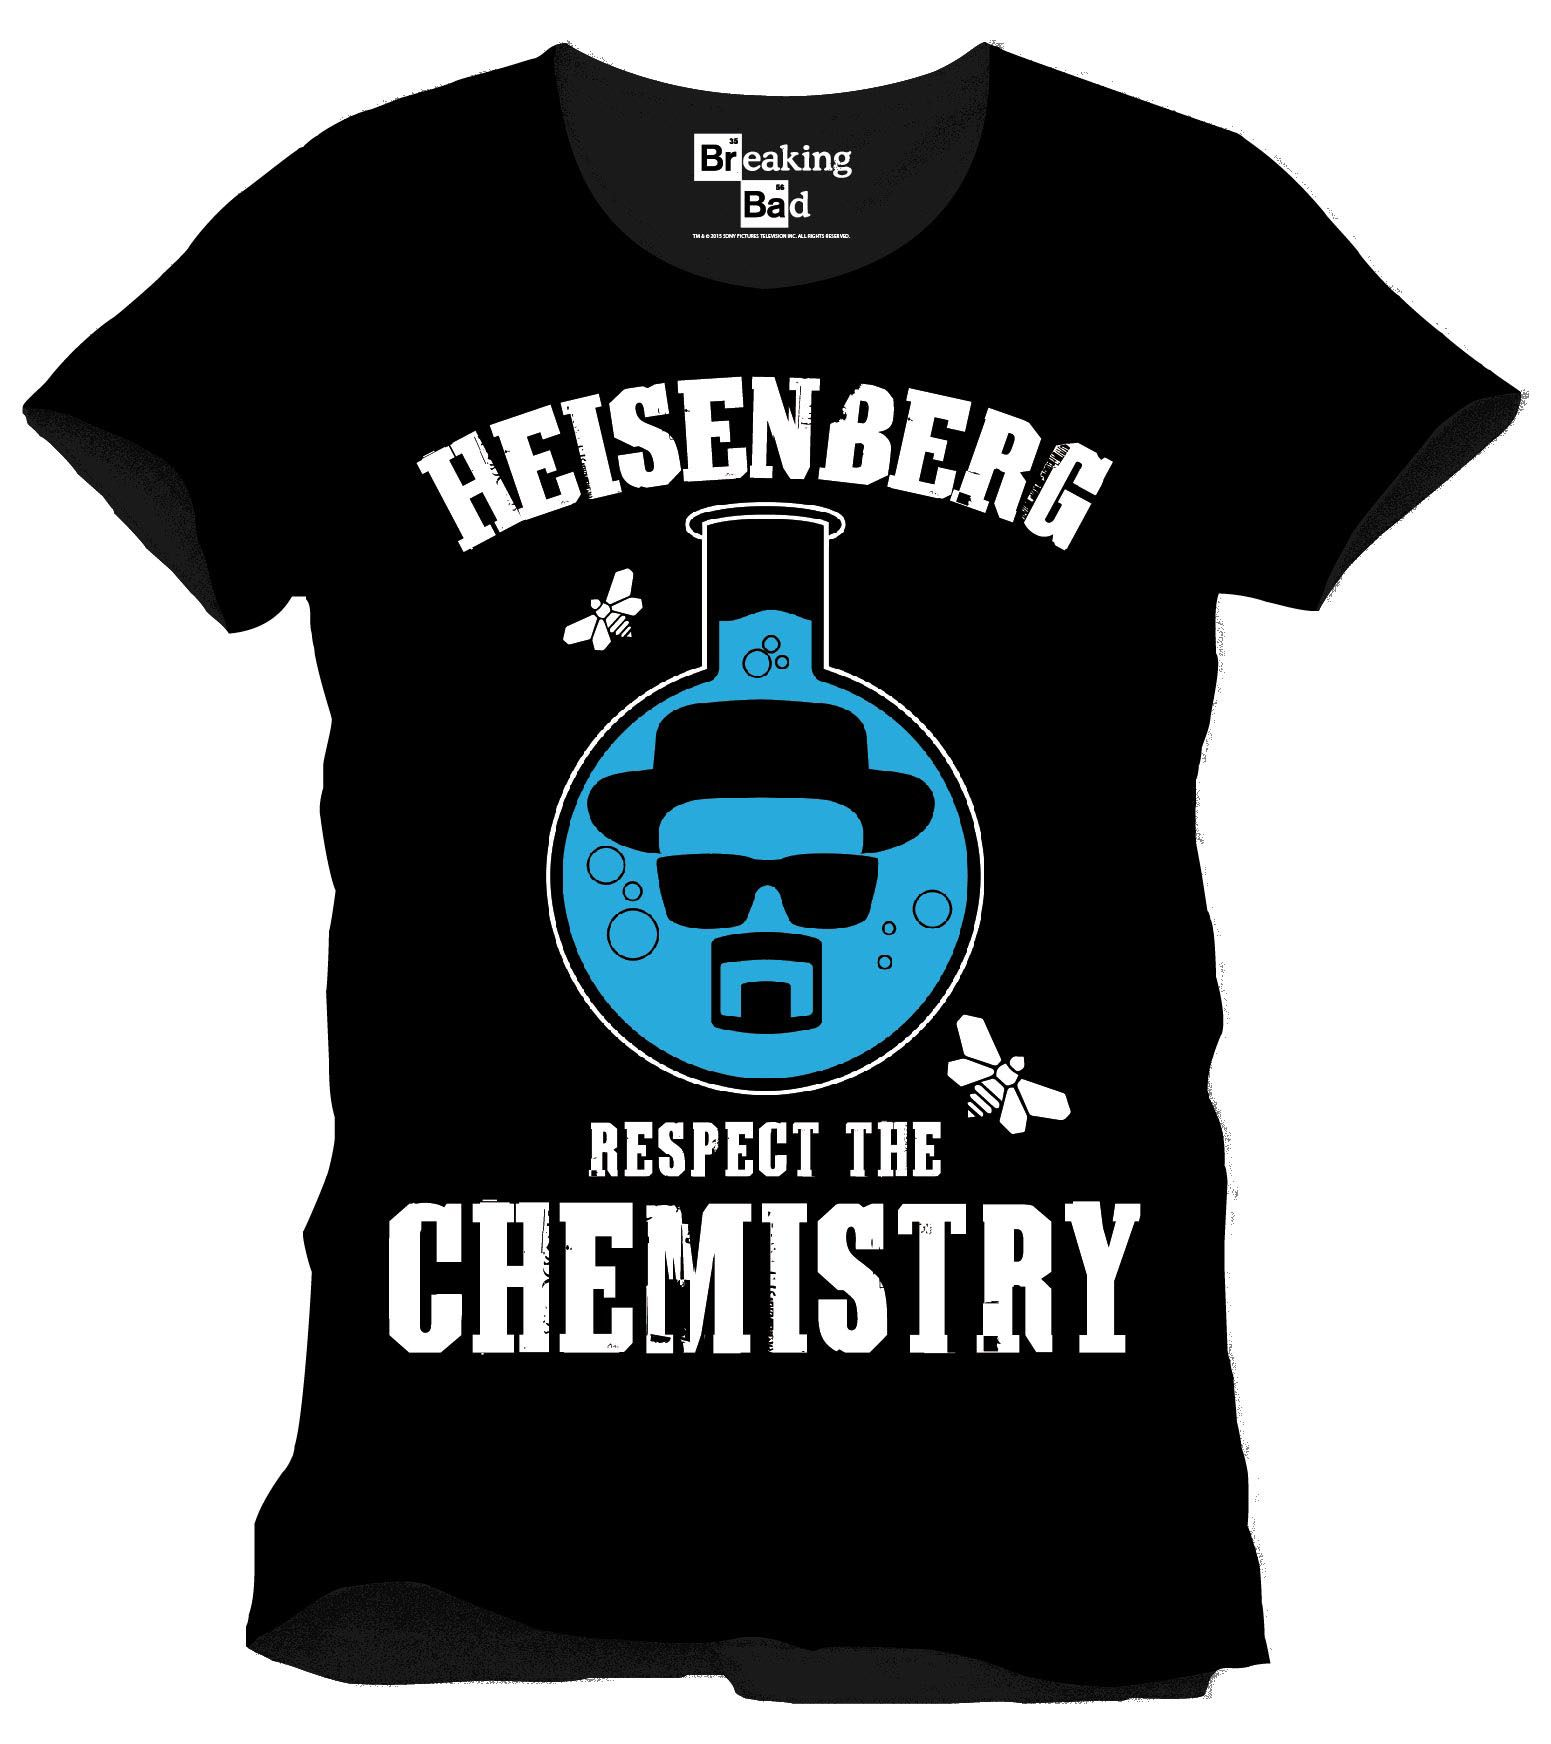 Breaking Bad T-Shirt Respect The Chemistry Size M